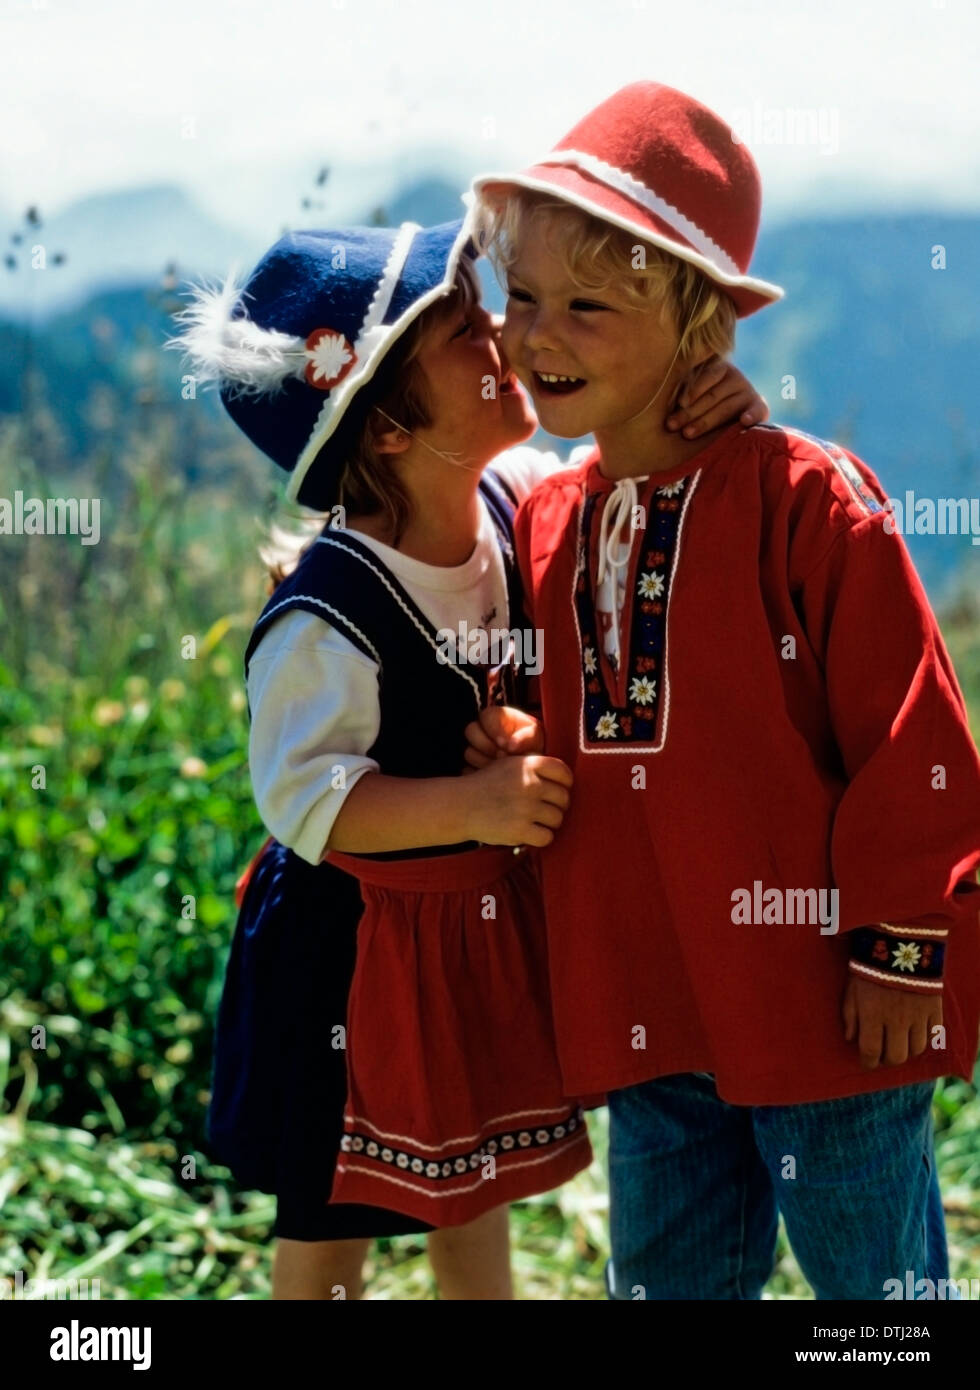 8f10b45cf Swiss boy and girl in traditional attire Stock Photo: 66779786 - Alamy